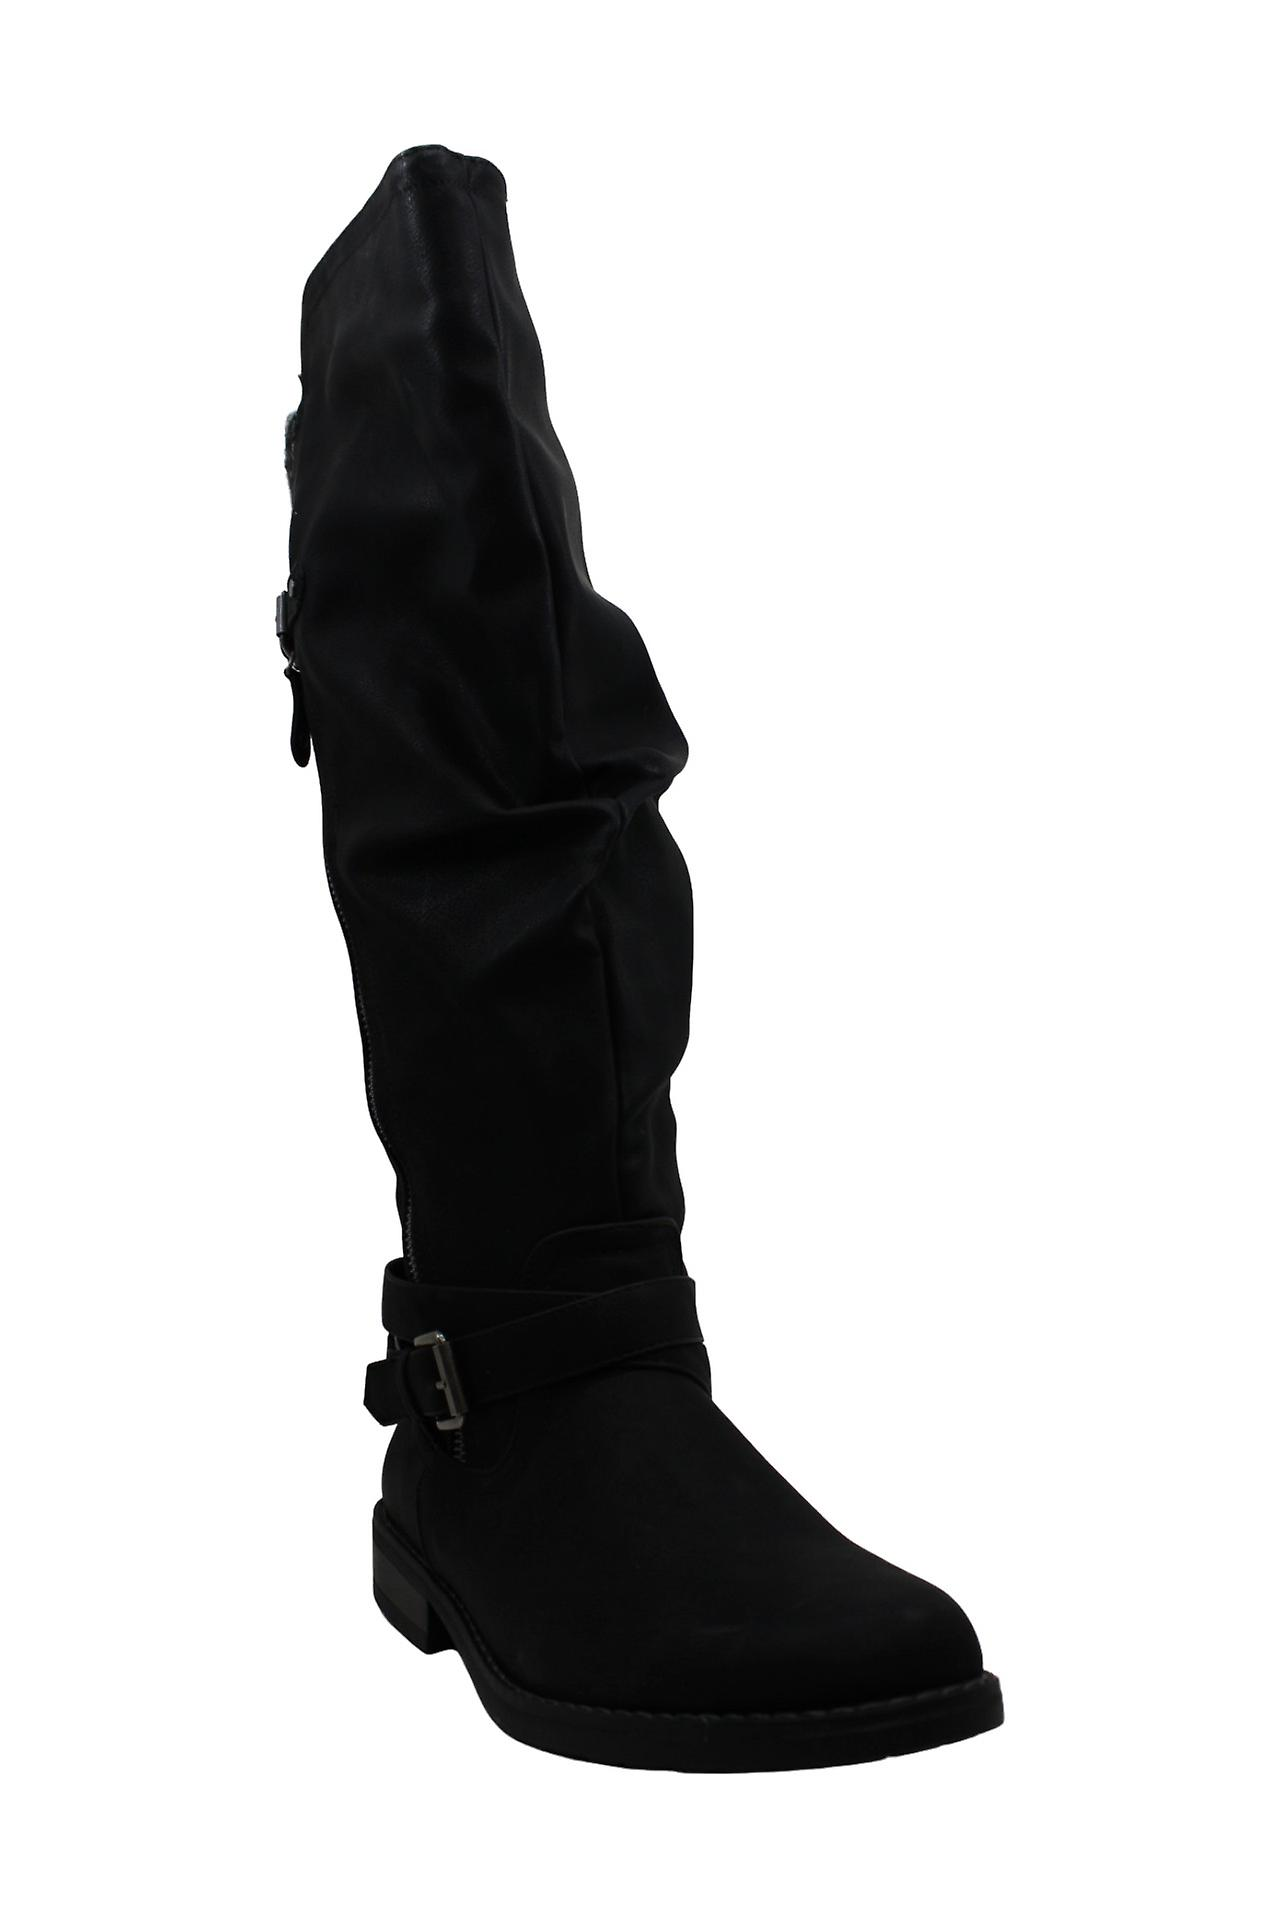 Xoxo Women's Shoes Miles Almond Toe Knee High Riding Boots